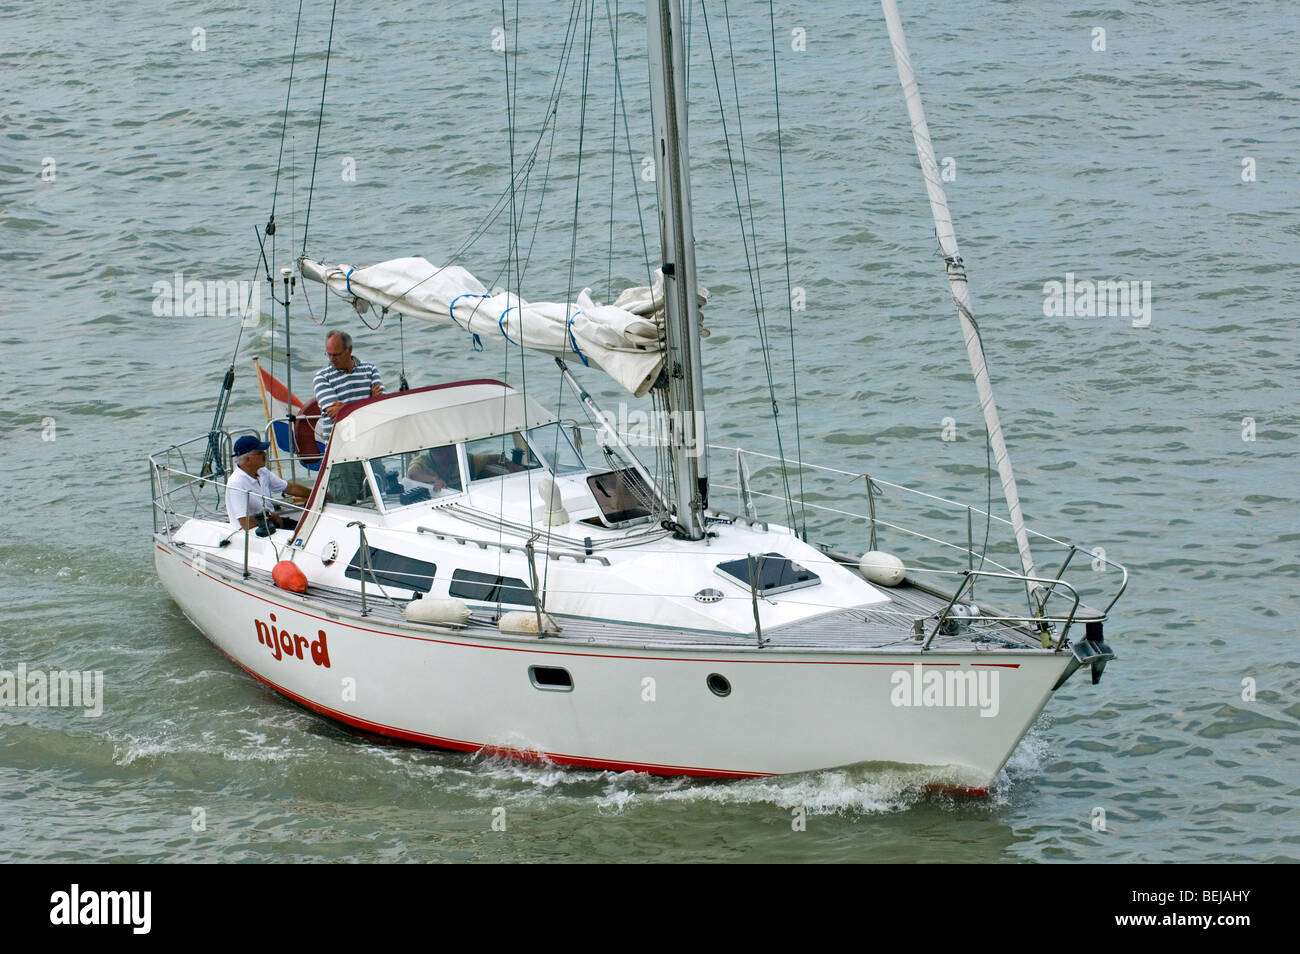 Sailing boat entering port with lowered sails, Belgium - Stock Image